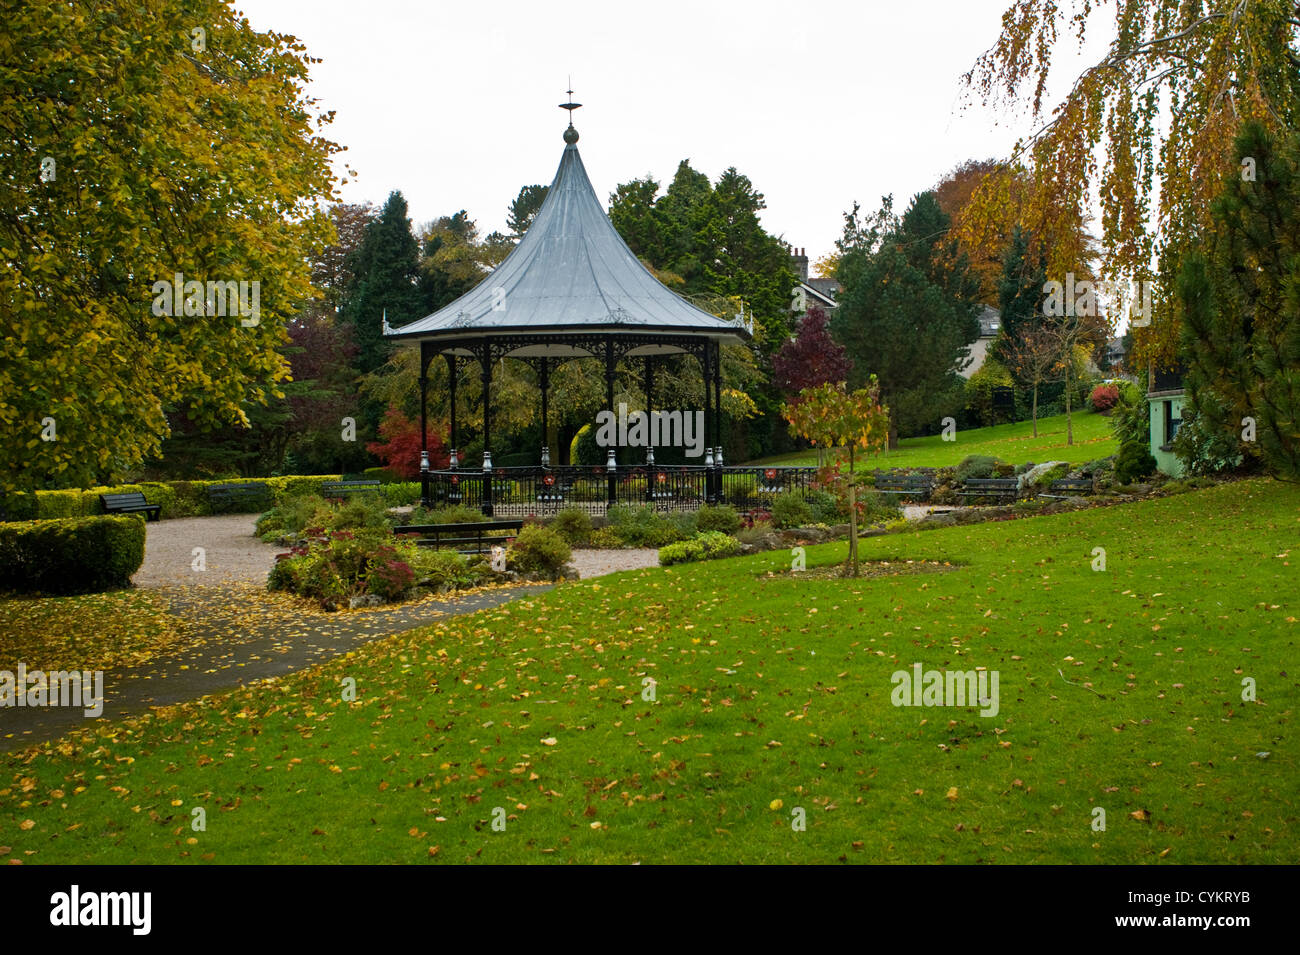 The Bandstand in the park, Grange-over-Sands - Stock Image